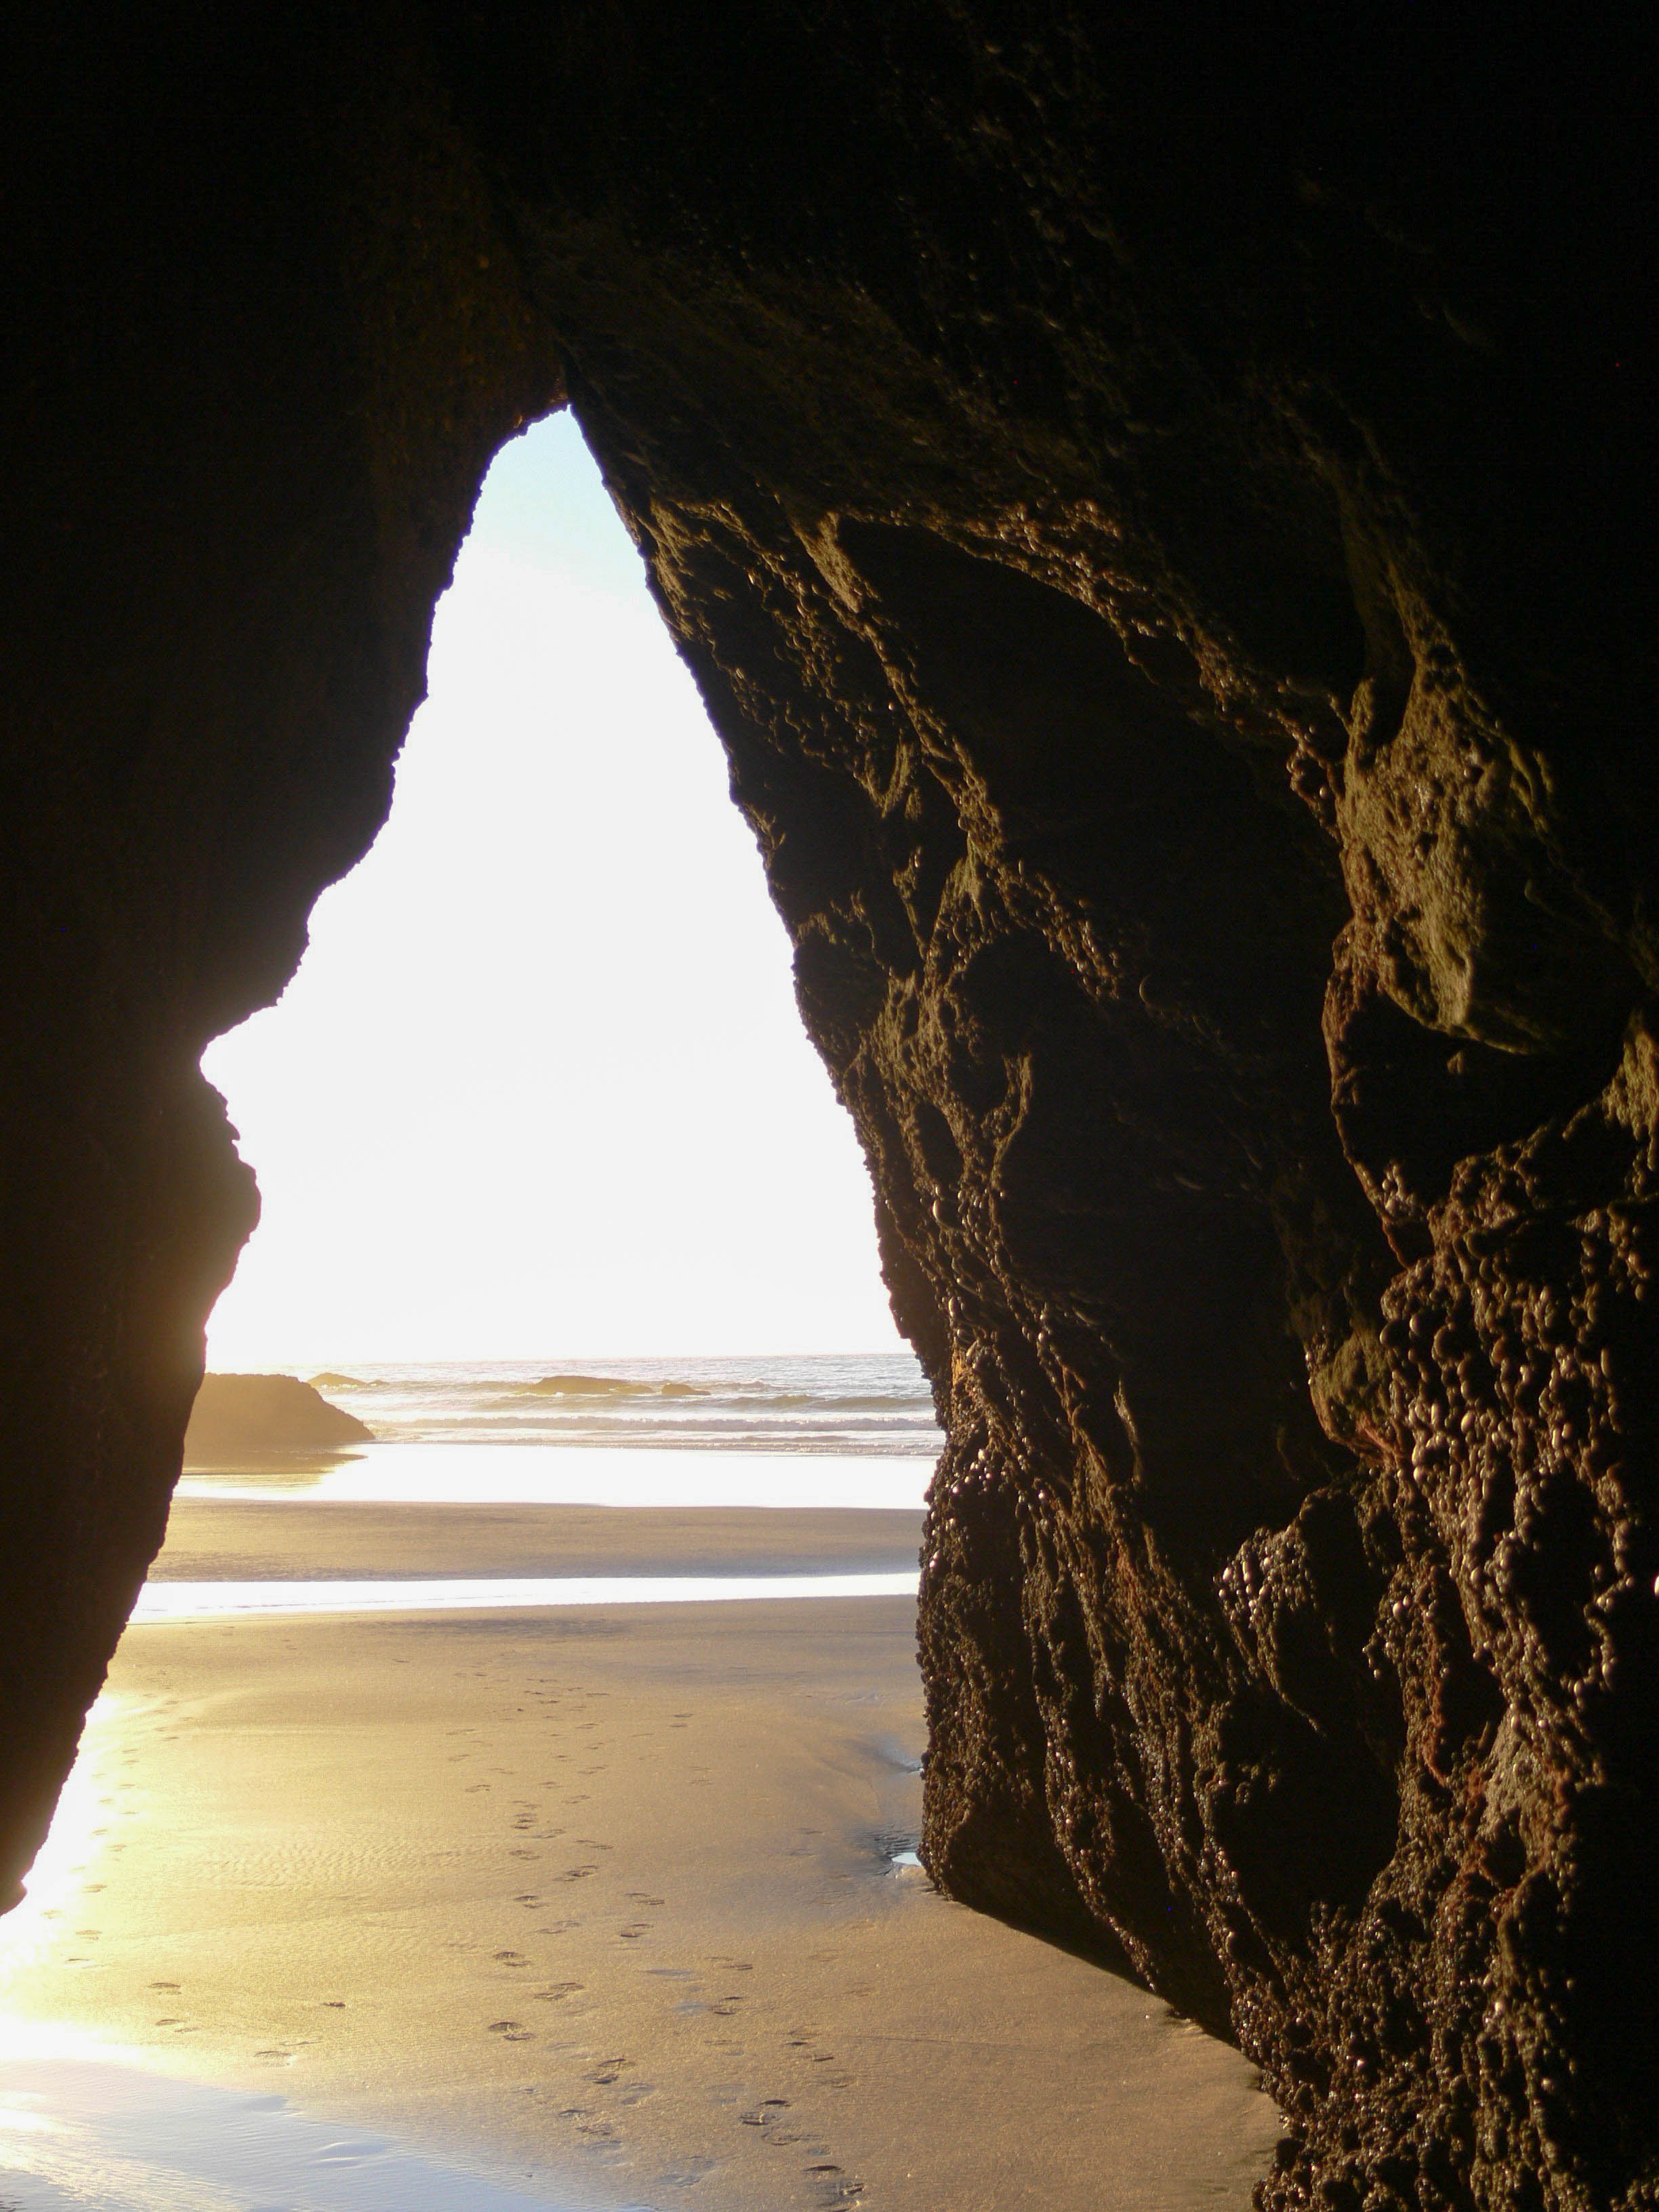 Cave at Wharariki Beach